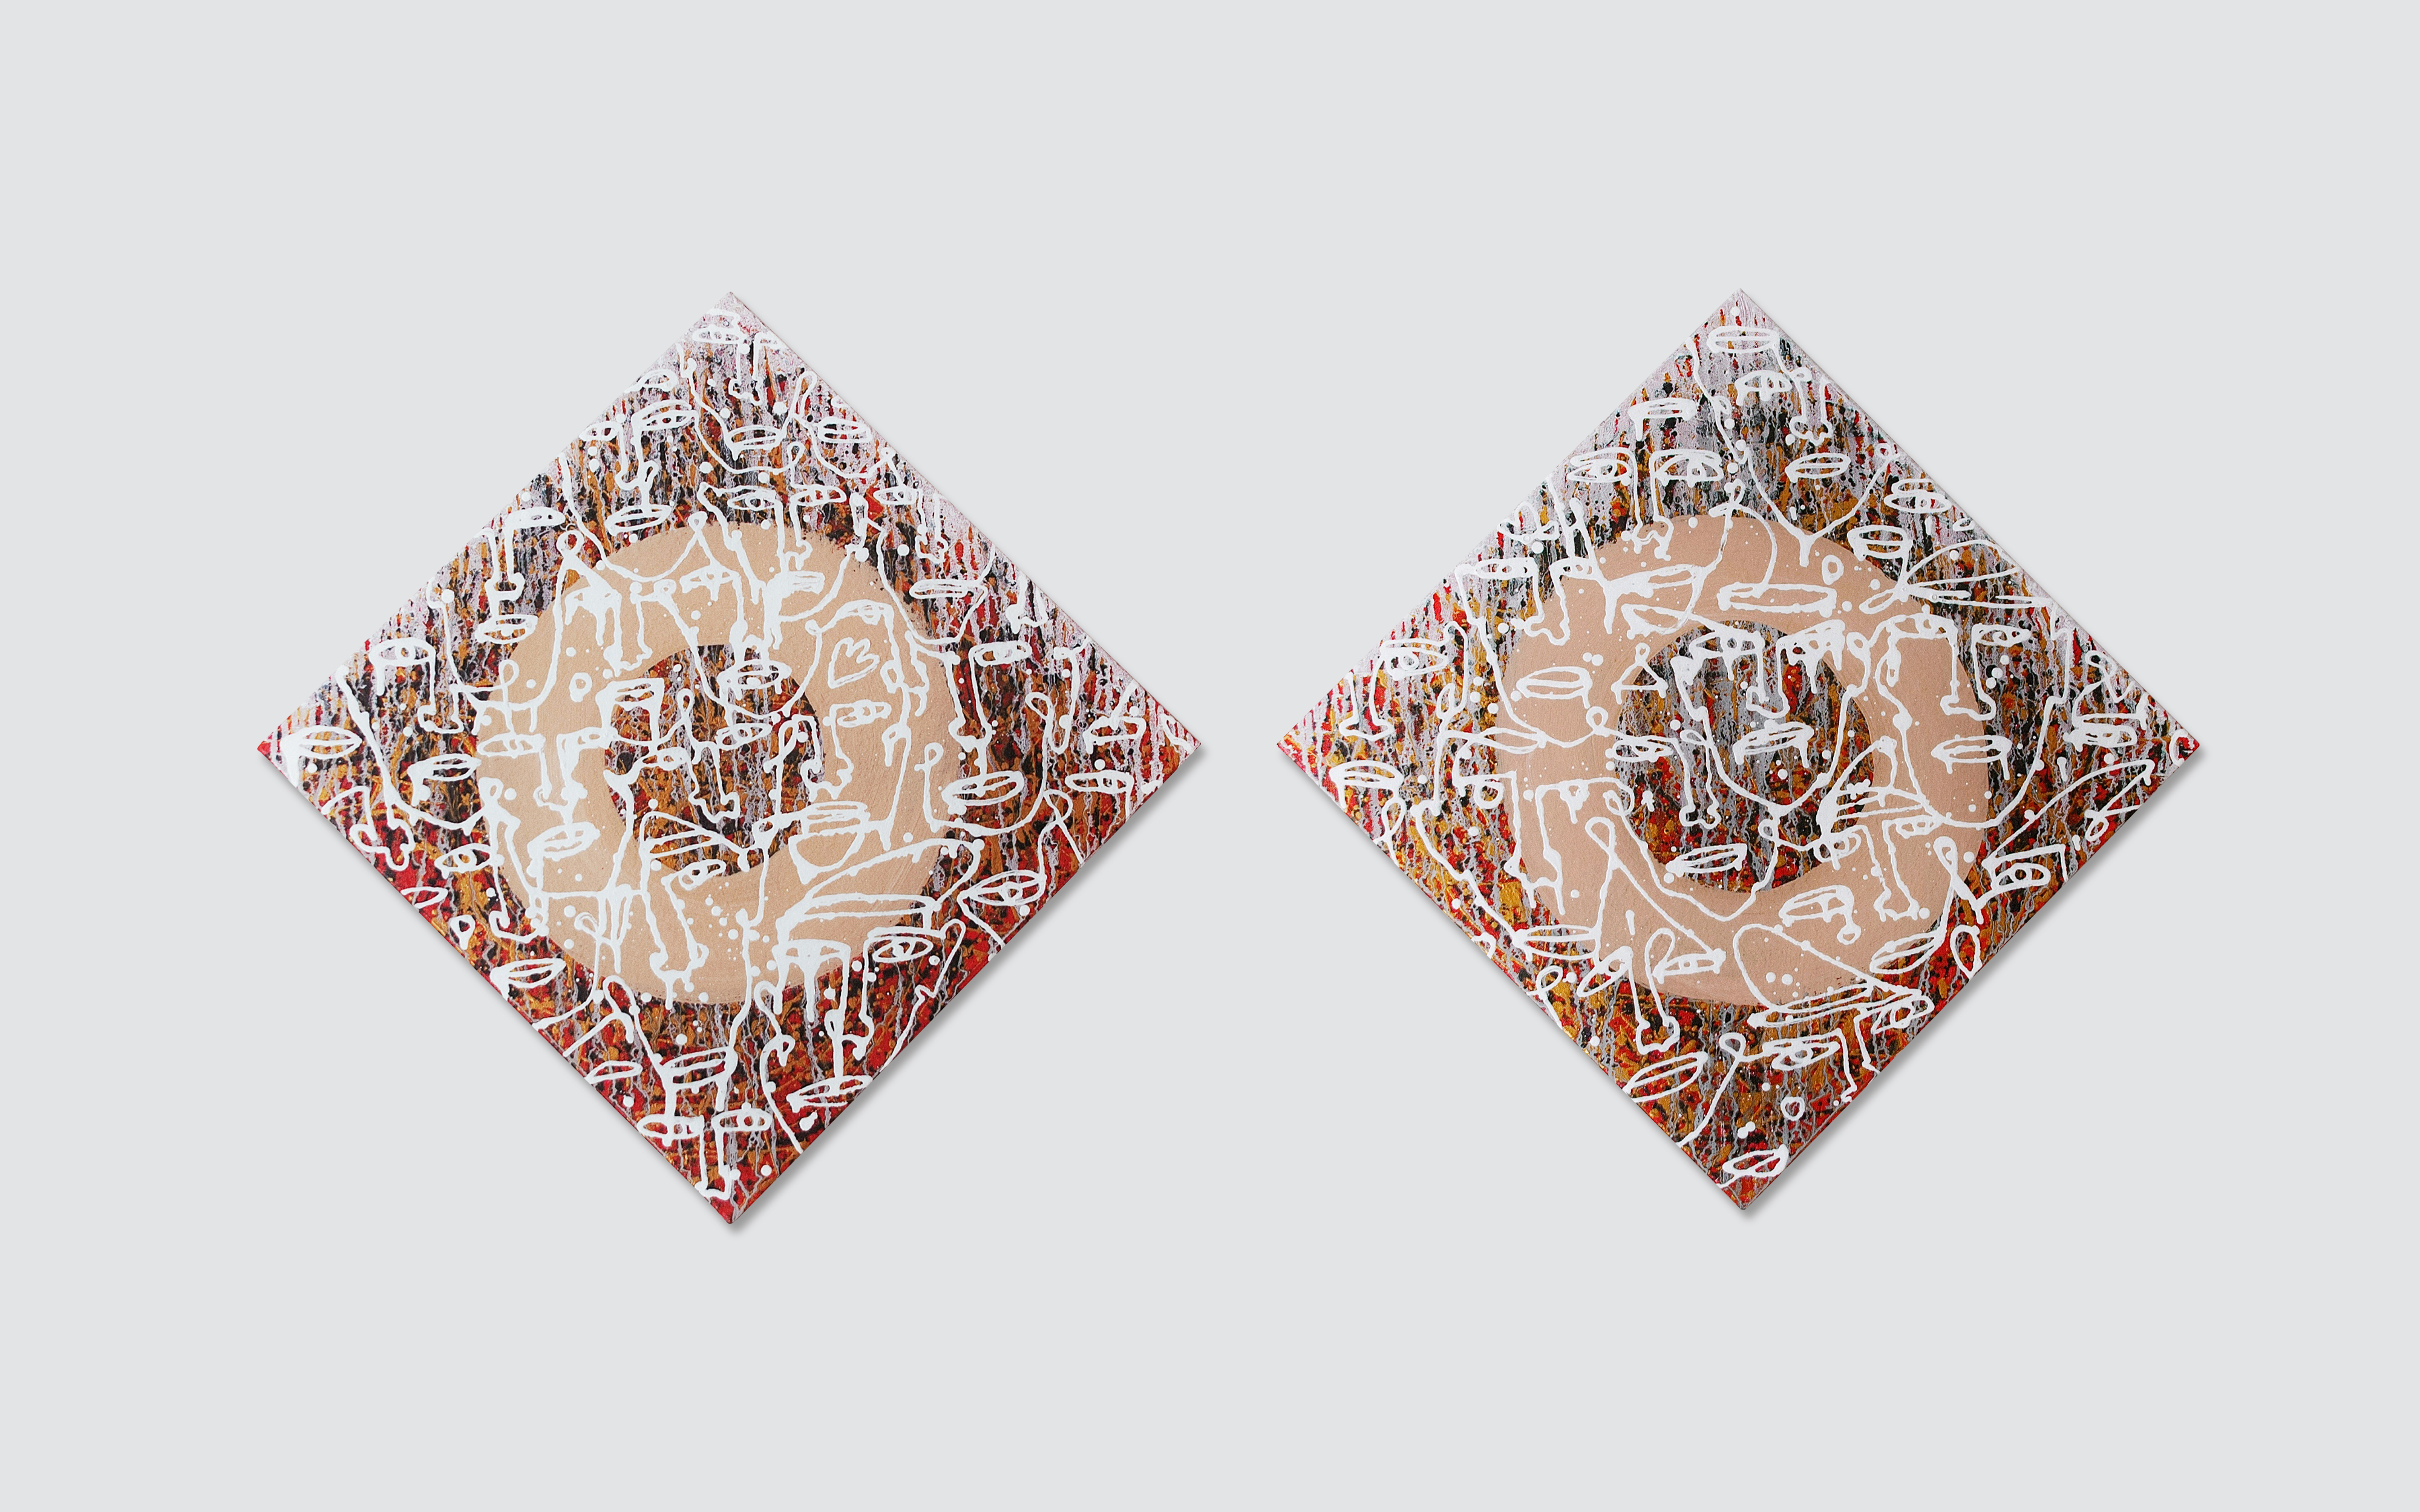 Cycle of life - contemporary Ukrainian art - diptych two square paintings - white monoline faces on a red and gold